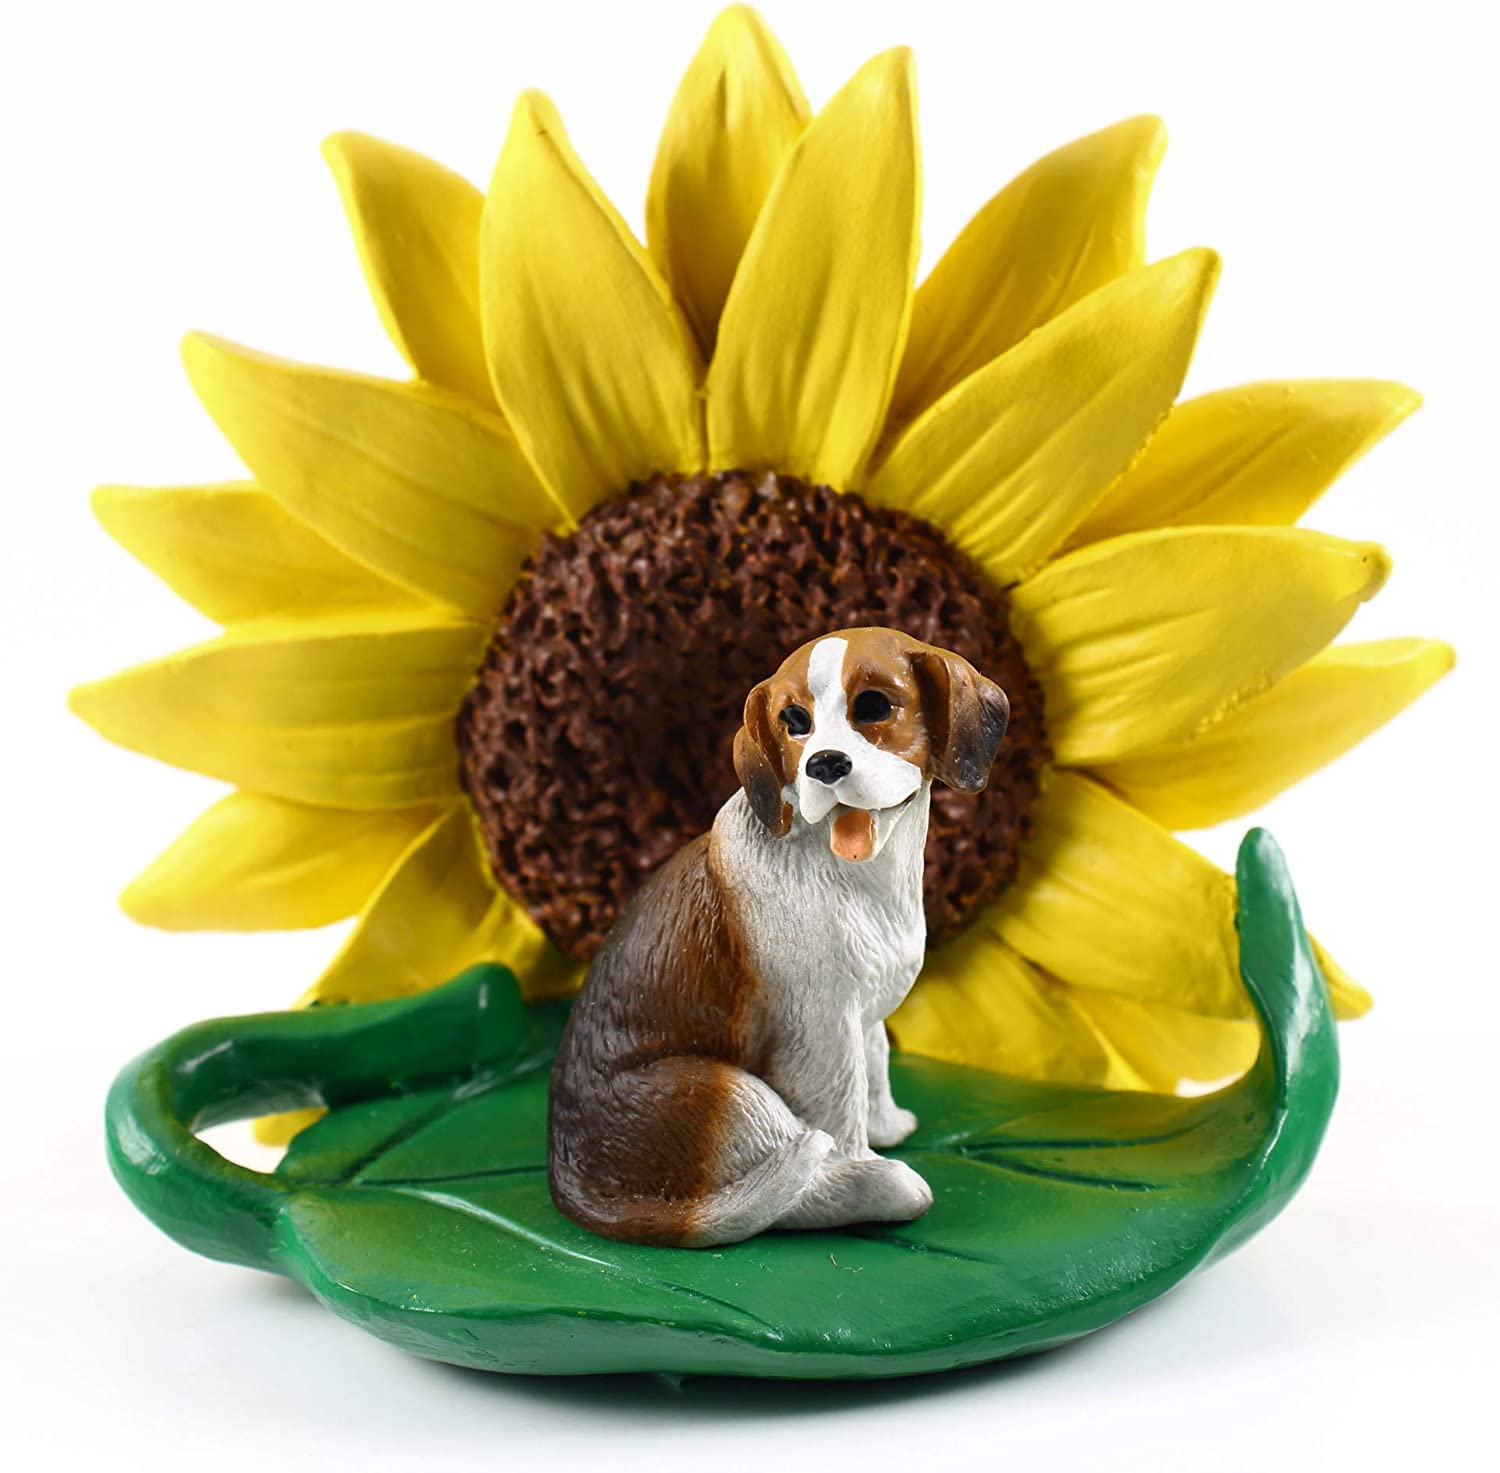 Conversation Concepts Beagle Figurine – Sunflower Statue Gift: Realistic Hand Painted Sculpture, Summer Nursery or Home Office Desk Decor, Spring Shower Present